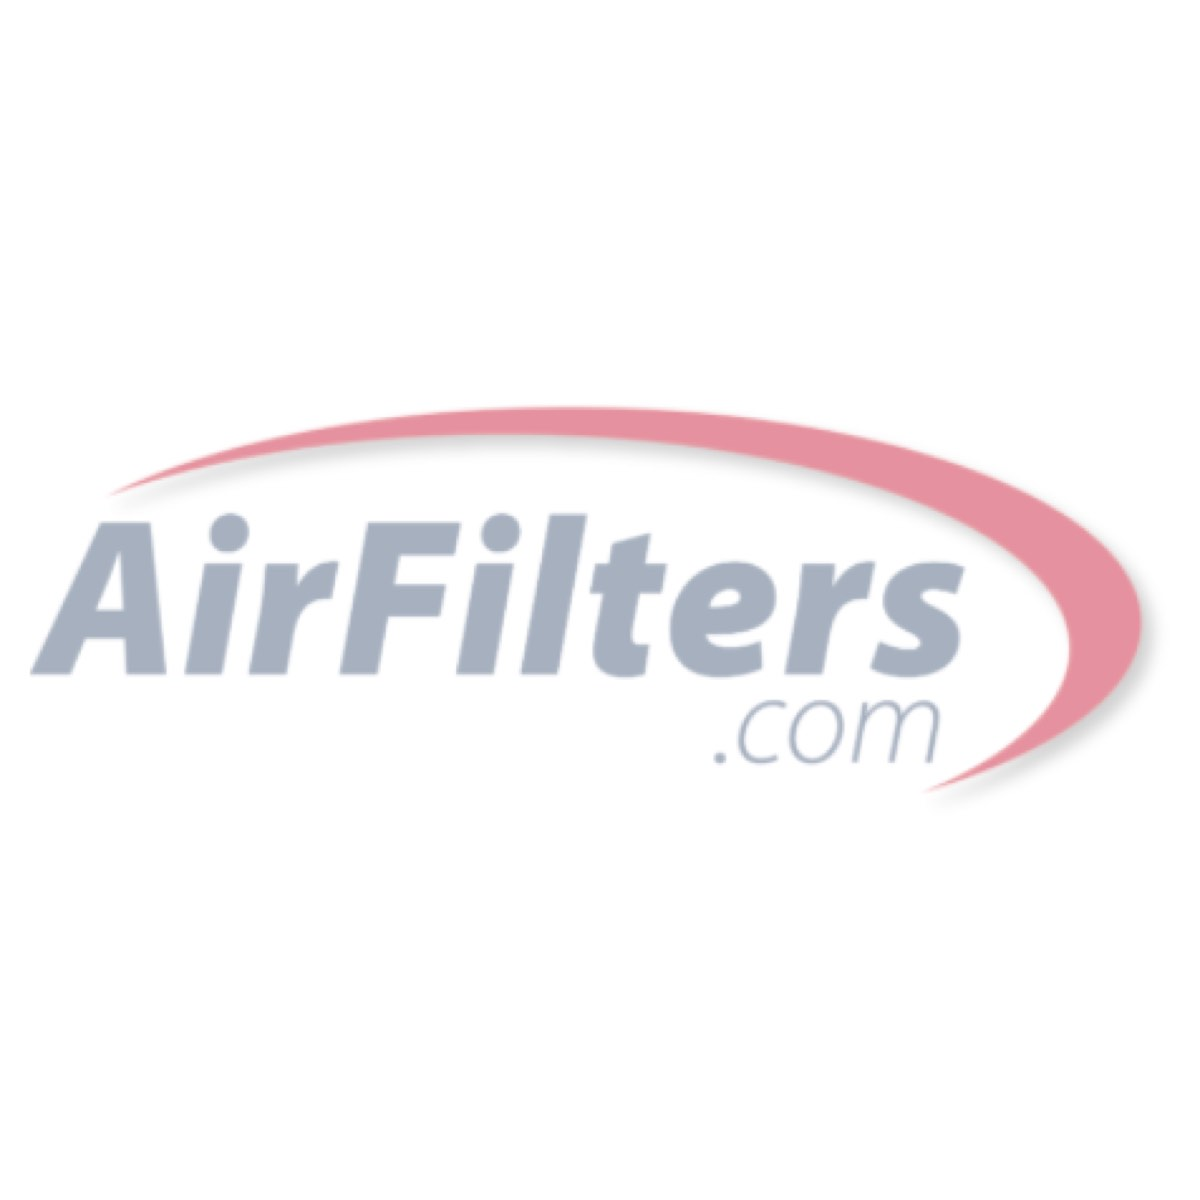 Electro-Air® 16x21x5 Furnace Filters by Accumulair®